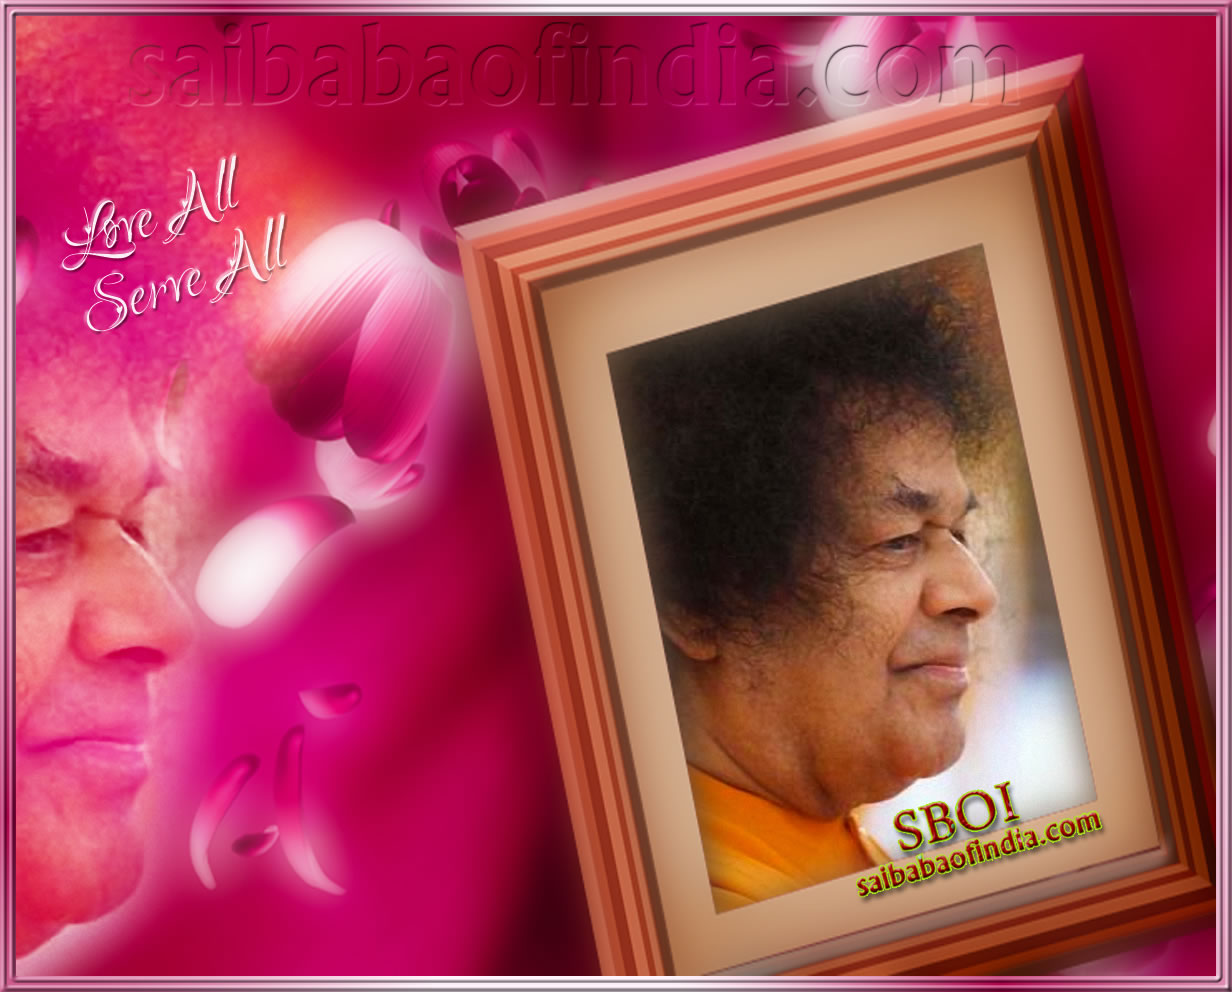 http://www.saibabaofindia.com/aug-oct2010/bhagawan-sri-sathya-sai-baba-smiling-photo.jpg